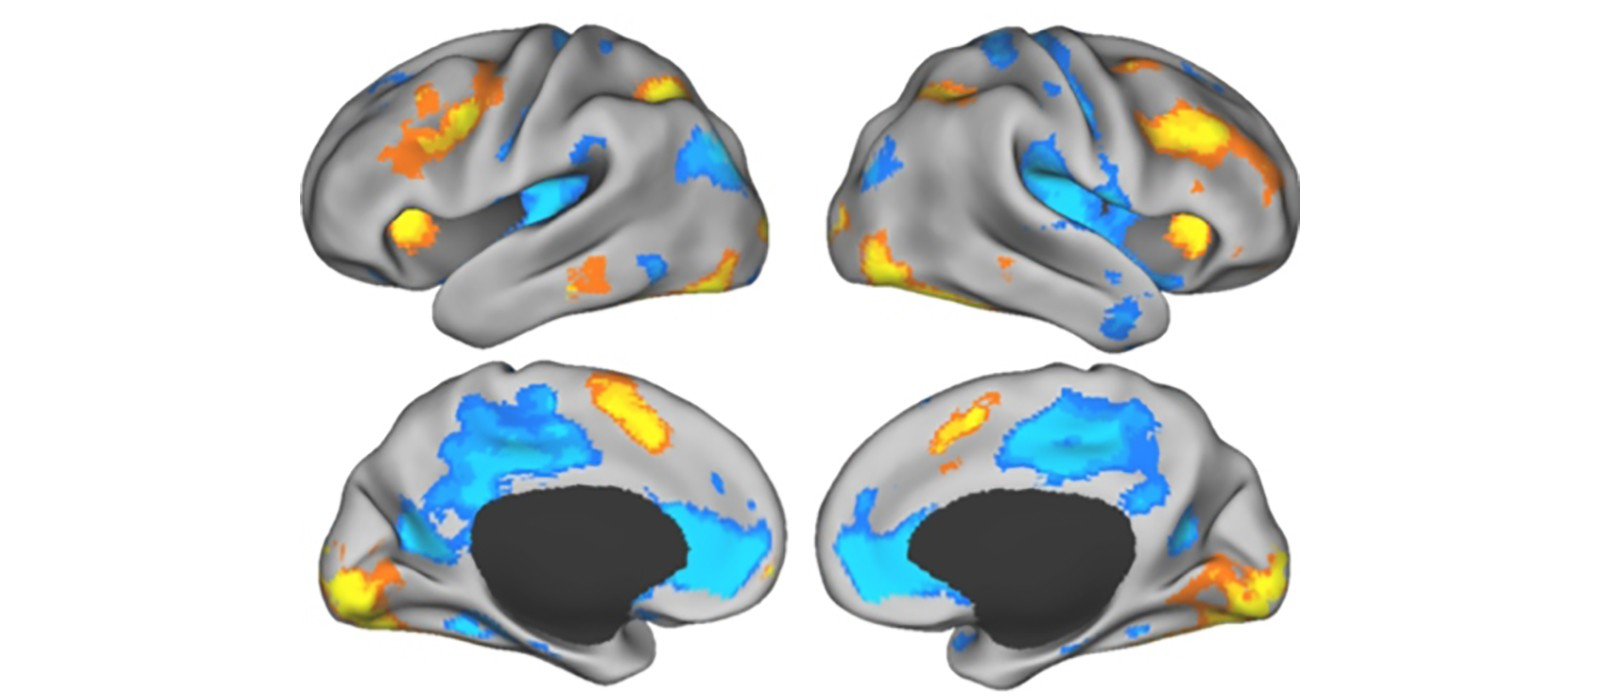 Brain scans task versus rest